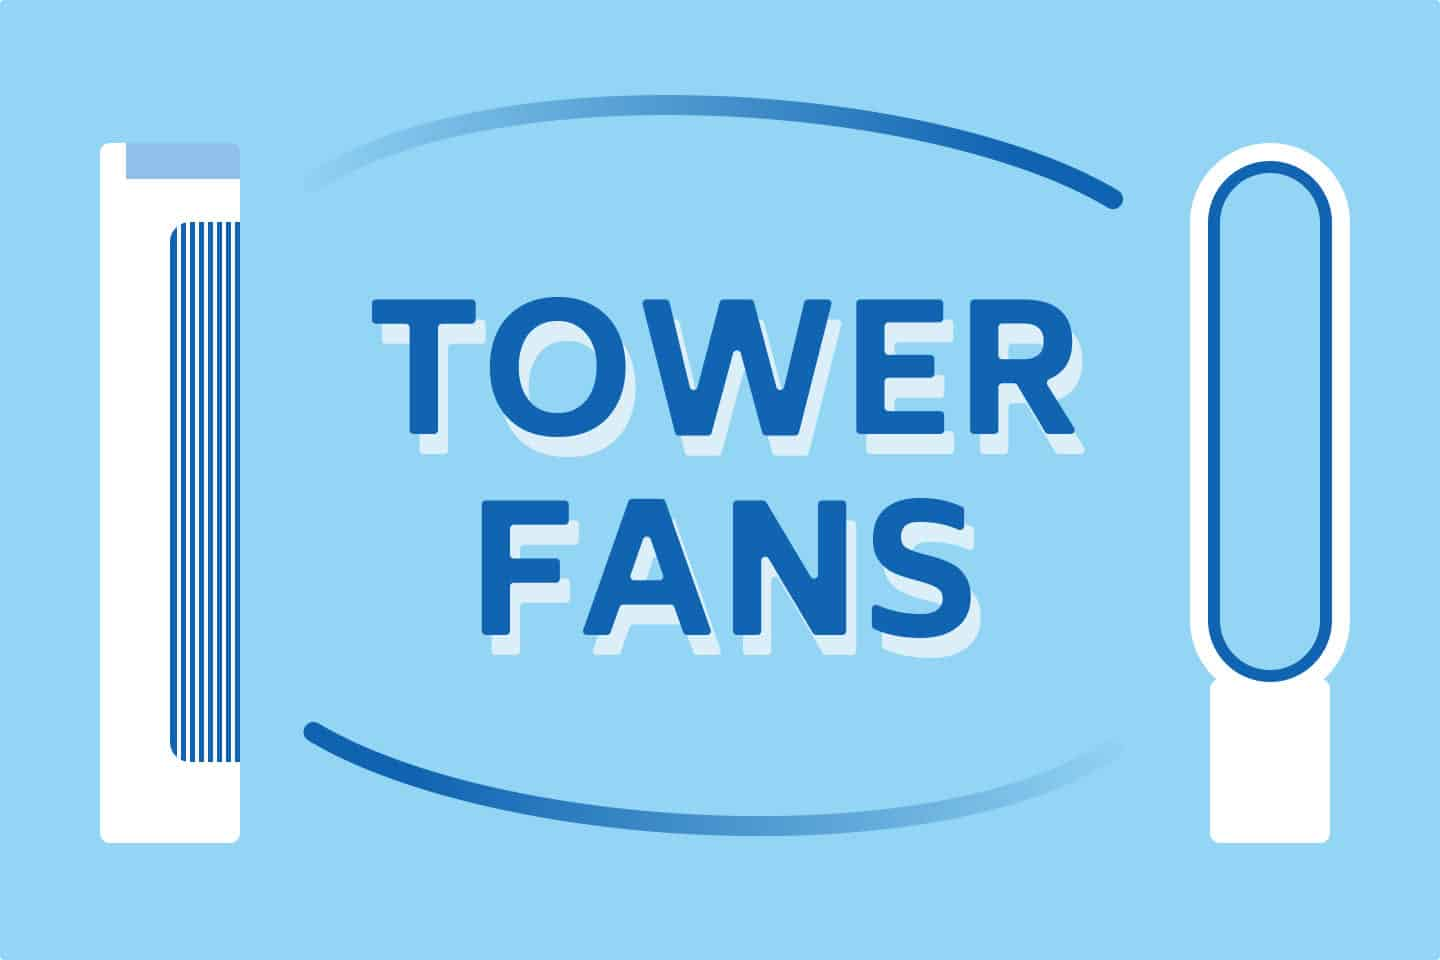 ❄️ Best Tower Fans to Buy This Summer!